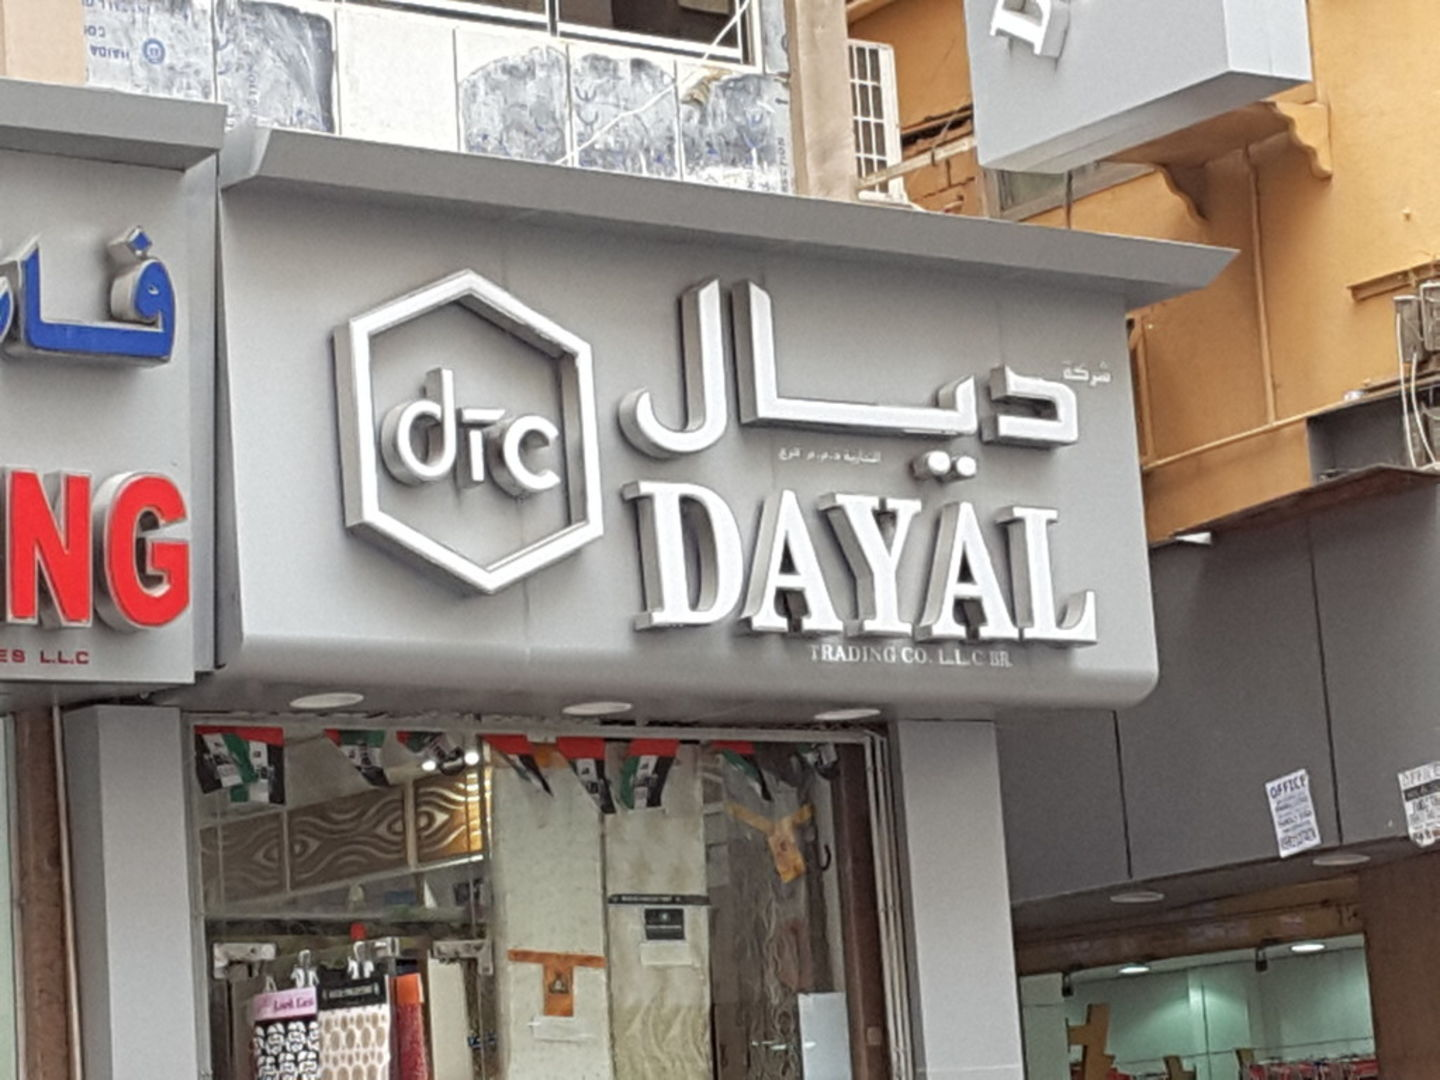 Walif-business-dayal-trading-co-1